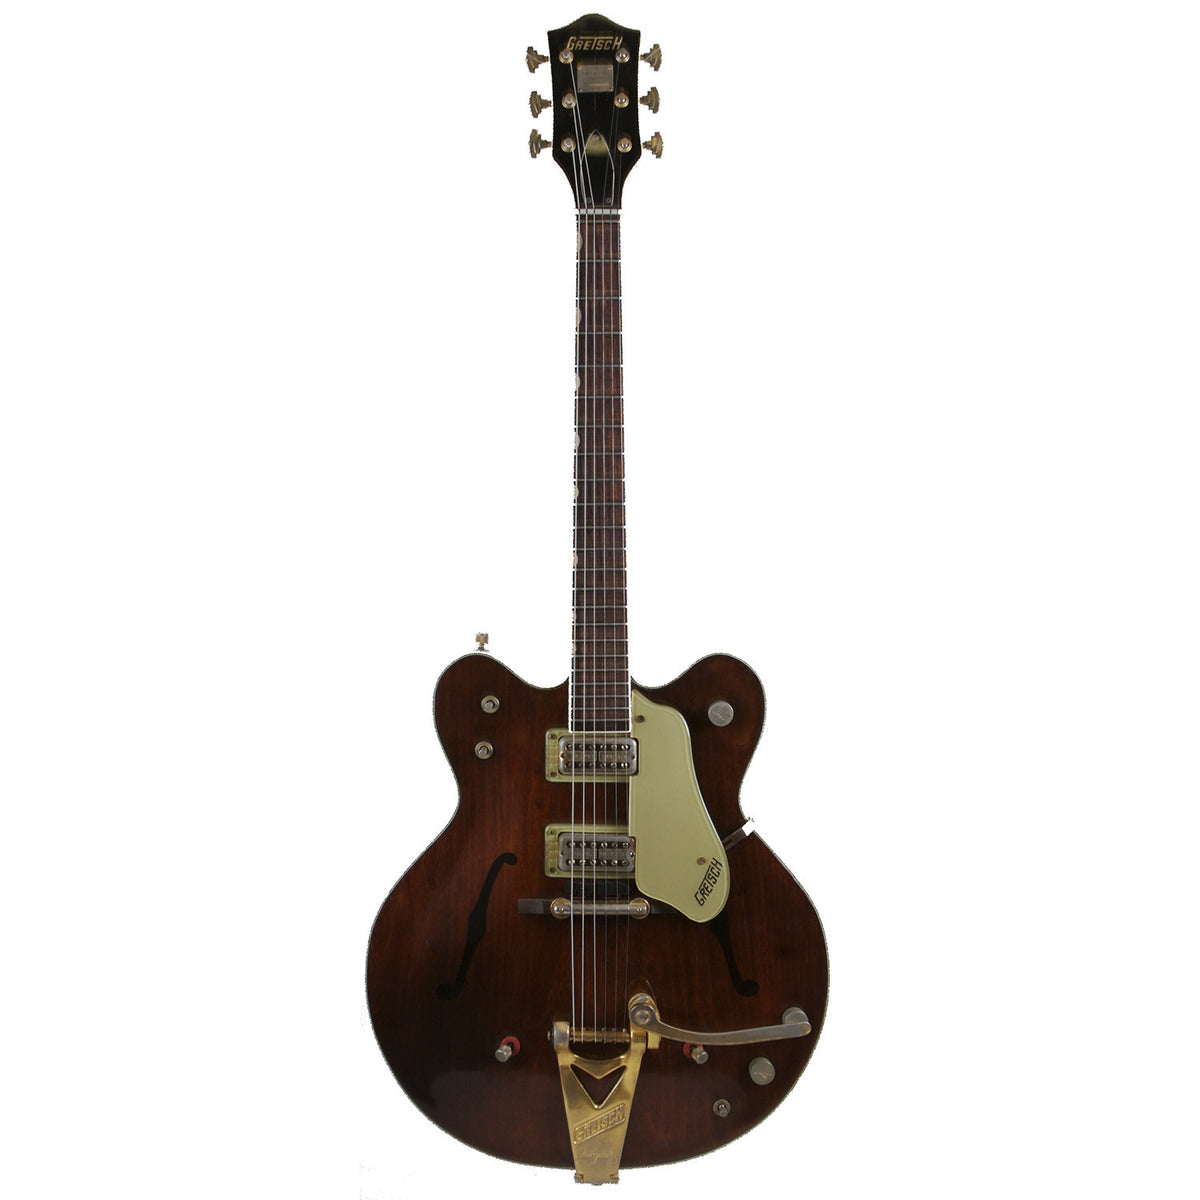 1965 Gretsch Country Gentleman Walnut - Garrett Park Guitars  - 3